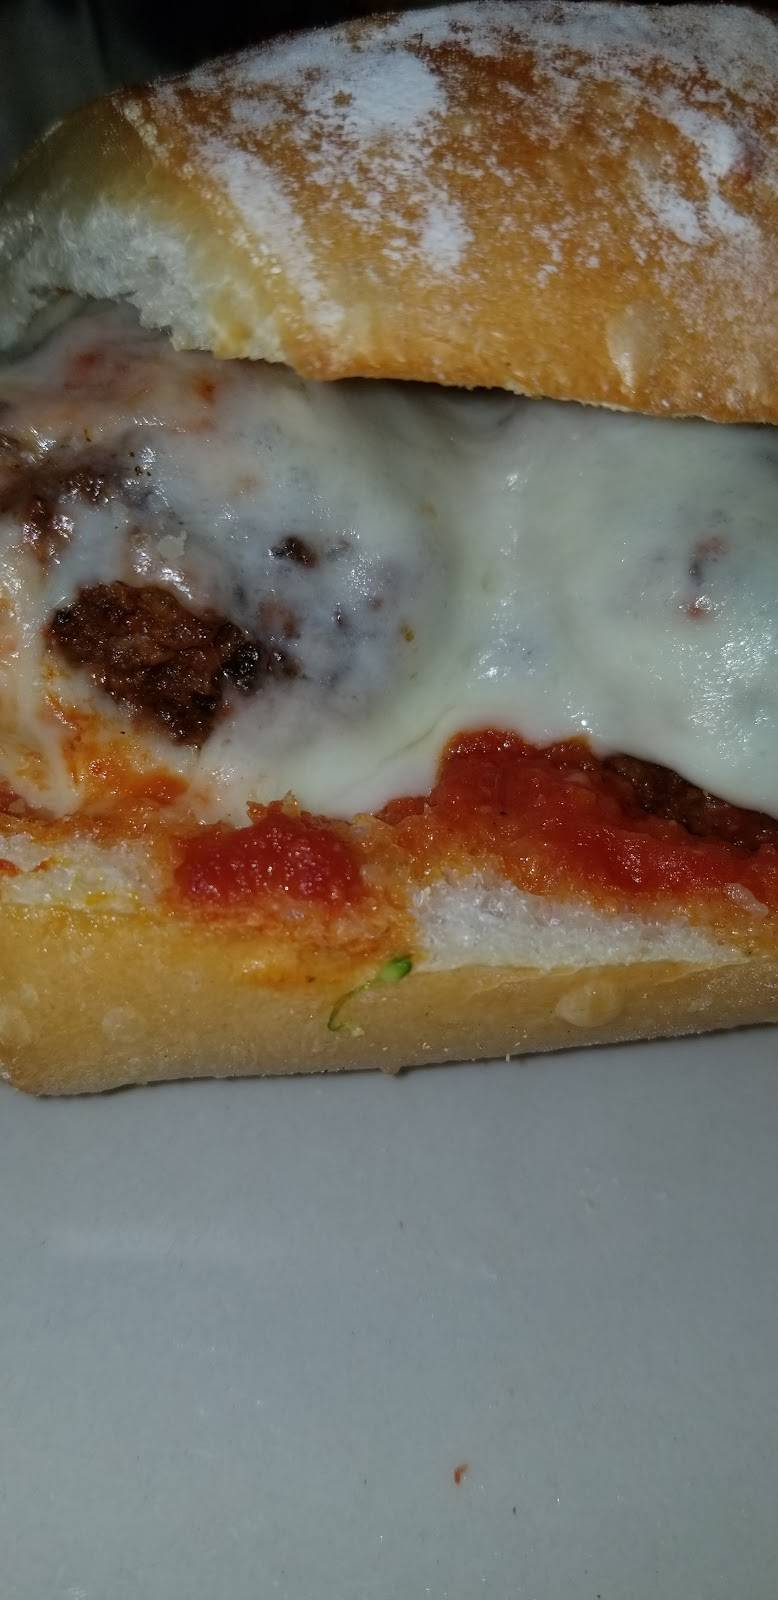 Buon Appetito | meal delivery | 2772, 520, Jersey Ave, Jersey City, NJ 07302, USA | 2019858200 OR +1 201-985-8200